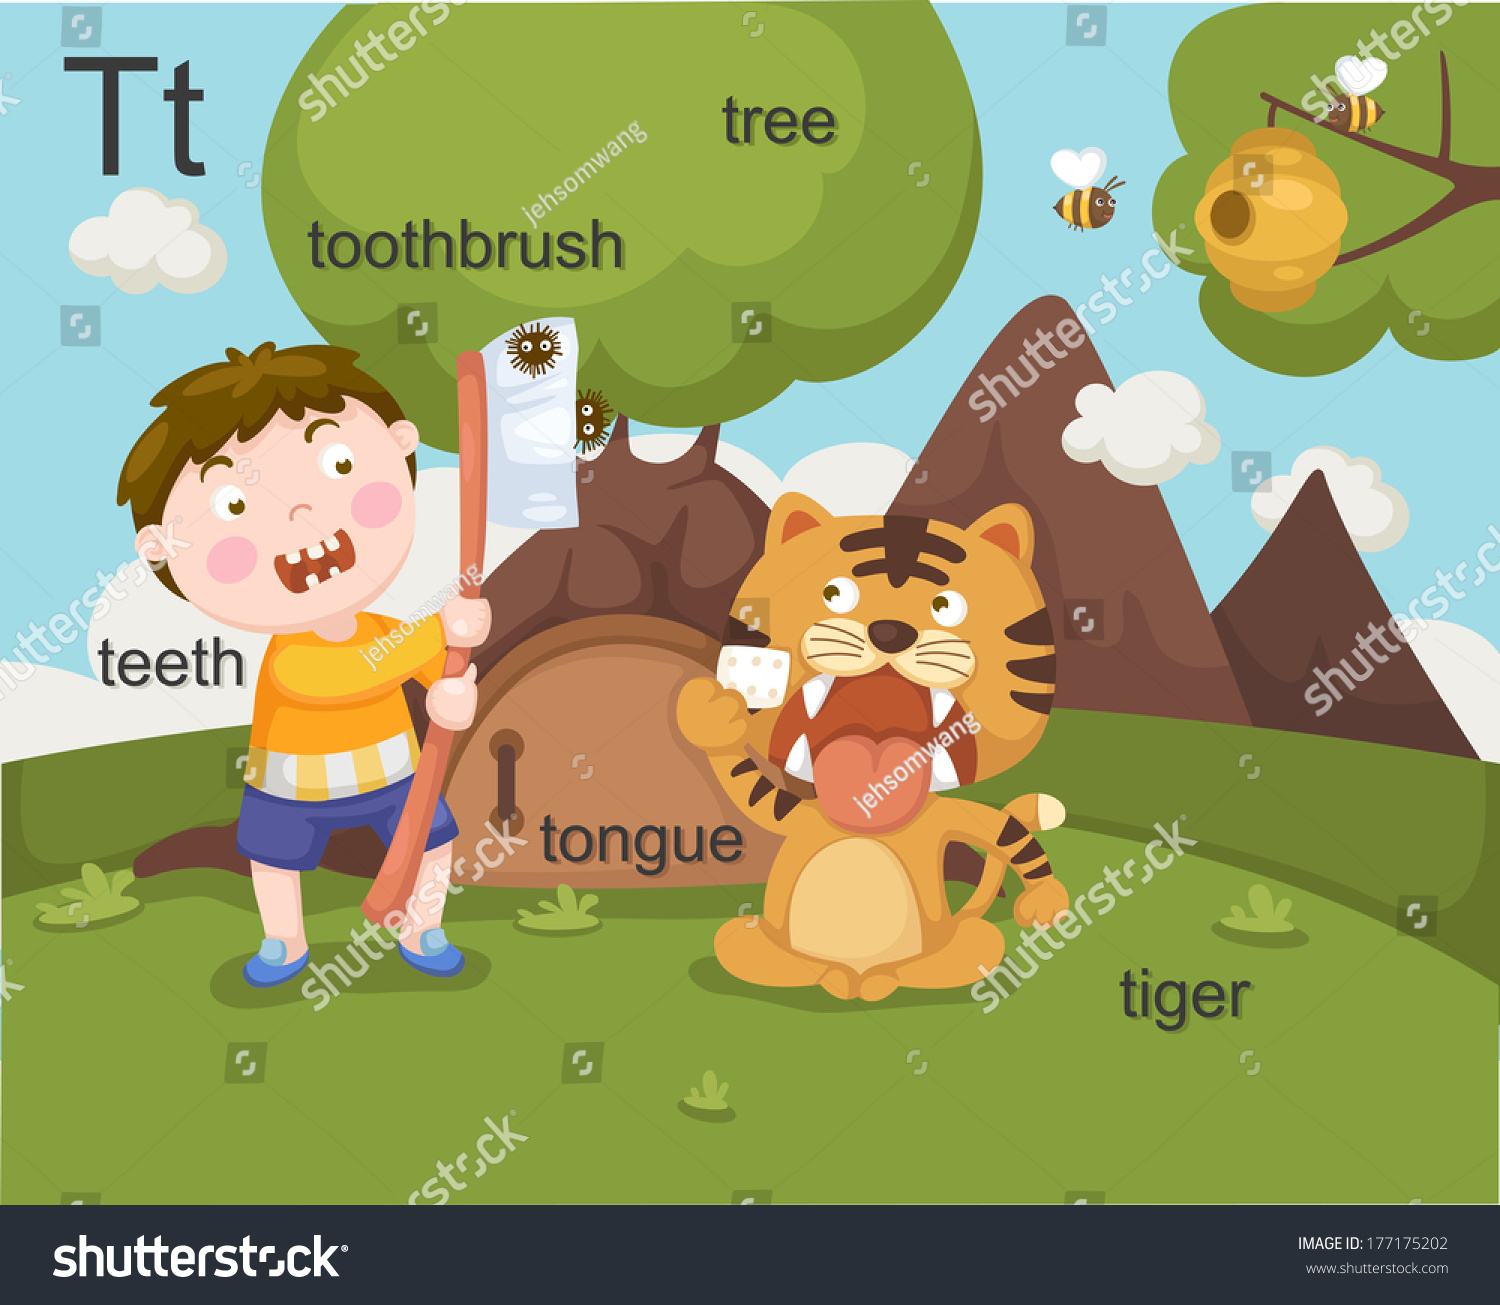 Alphabet T Letter Teeth Toothbrush Tree Tongue Tiger Stock